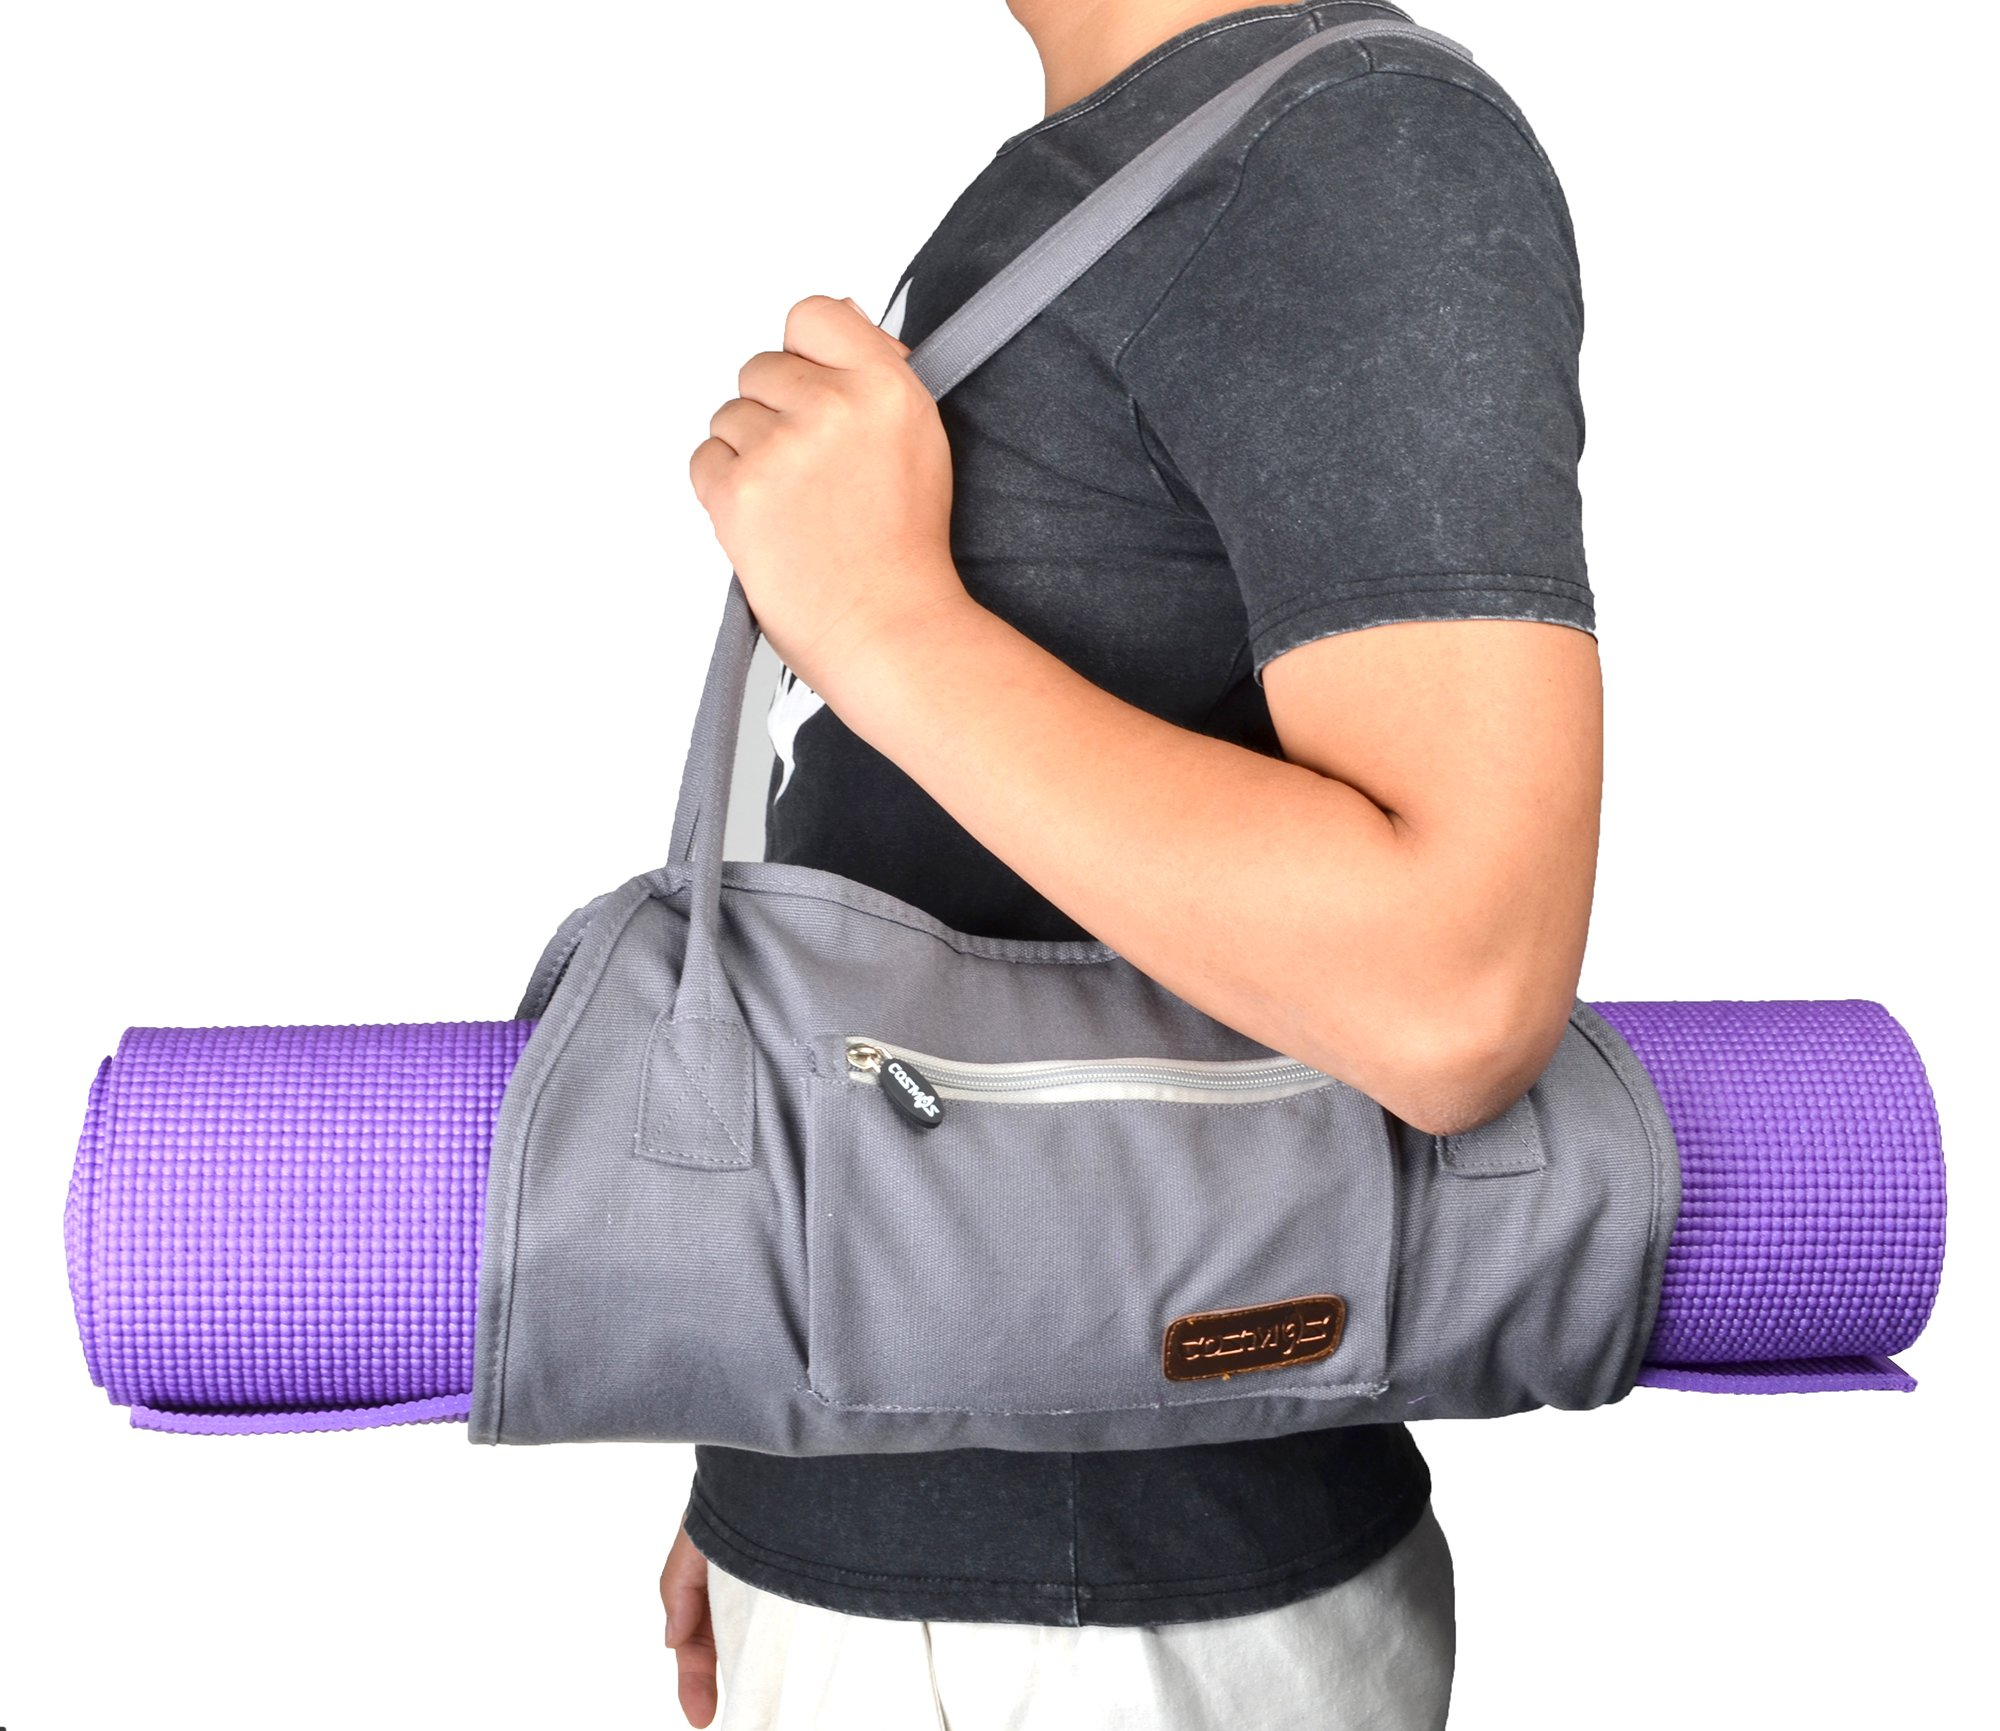 Cosmos Exercise Yoga Mat Carrying Shoulder Strap Bag with Internal and Outside Storge Pocket (Yoga Mat is NOT Included) by Cosmos (Image #6)